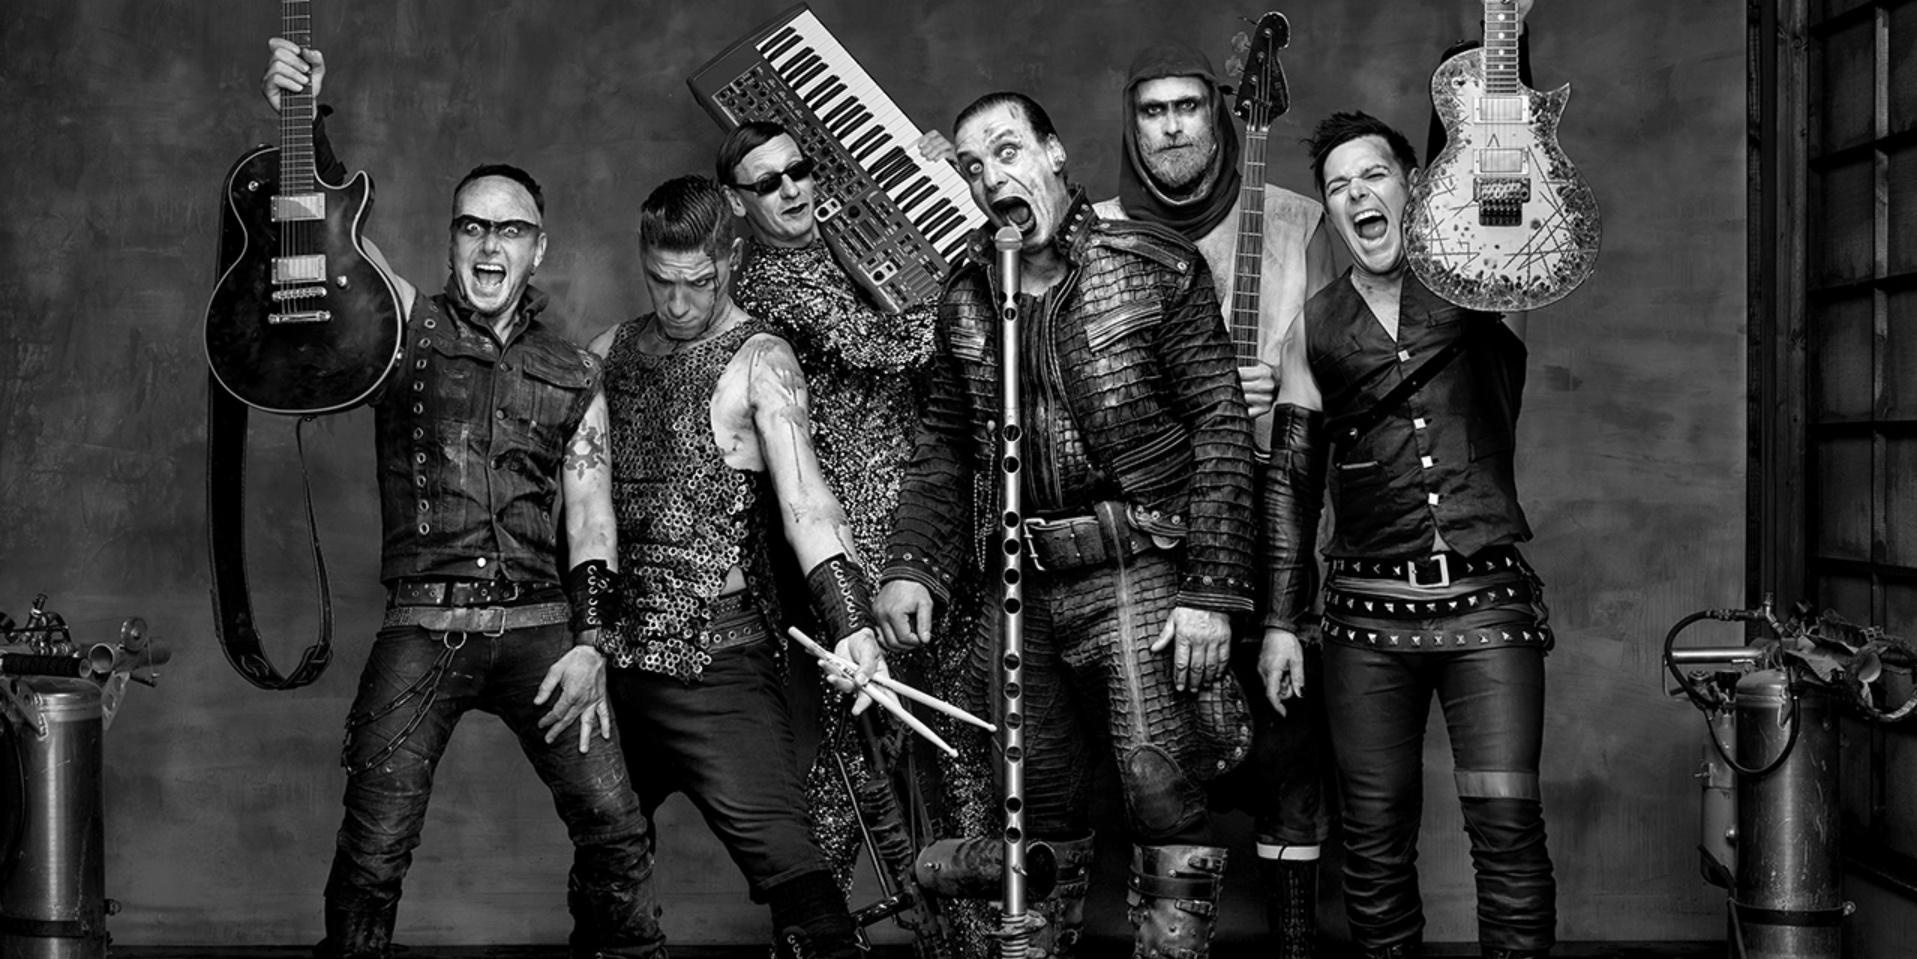 Listen to snippets of riffs used in Rammstein's upcoming album